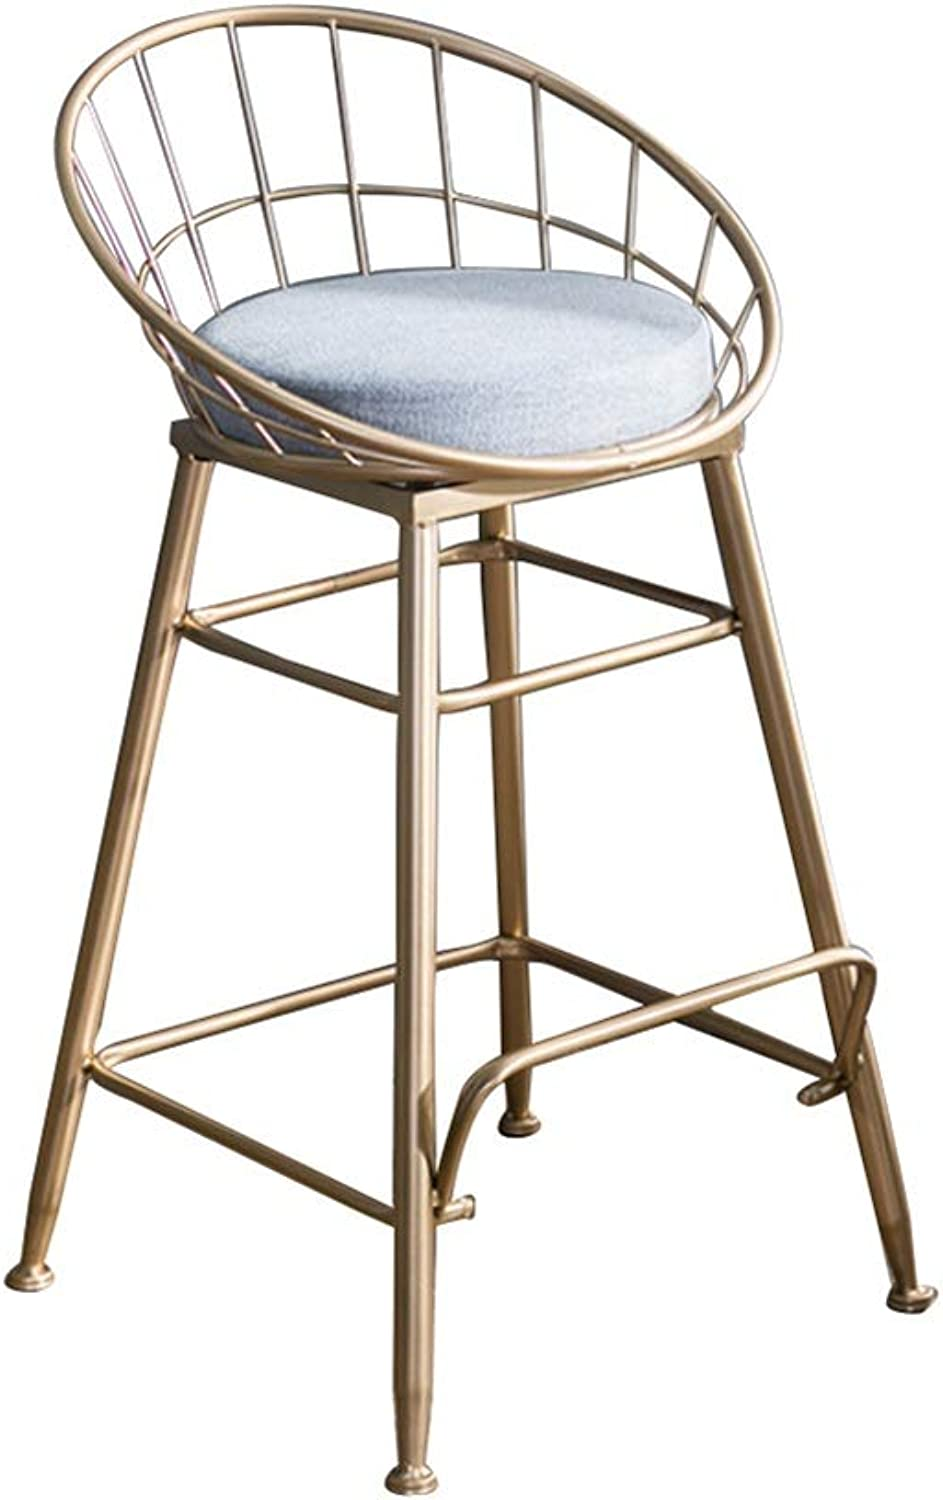 Barstools Chair High Stool Bar Stool Breakfast Chair and Cushion Seat Back Comfort Kitchen Breakfast Counter Greenhouse gold (Multiple Sizes) (Size   47x47x65cm)